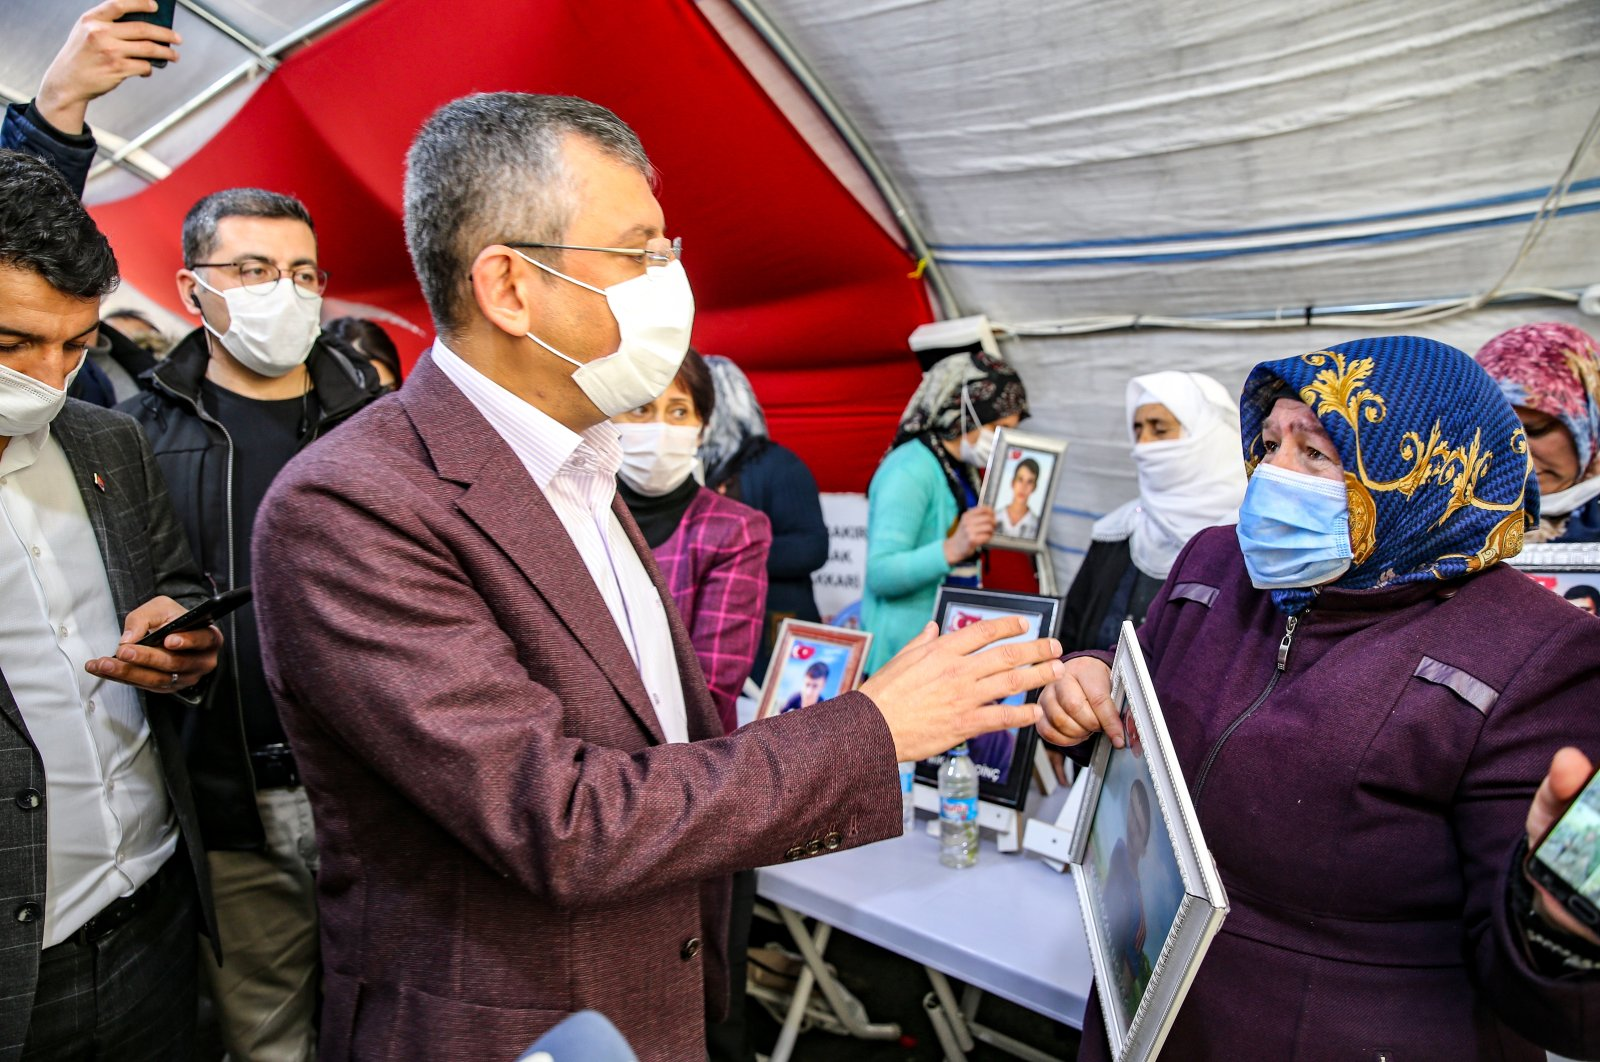 CHP Group Deputy Chairperson Özgür Özel speaks with a mother protesting her son's abduction by the PKK terrorists in front of the pro-PKK HDP headquarters in Diyarbakır on March 3, 2021 (AA Photo)